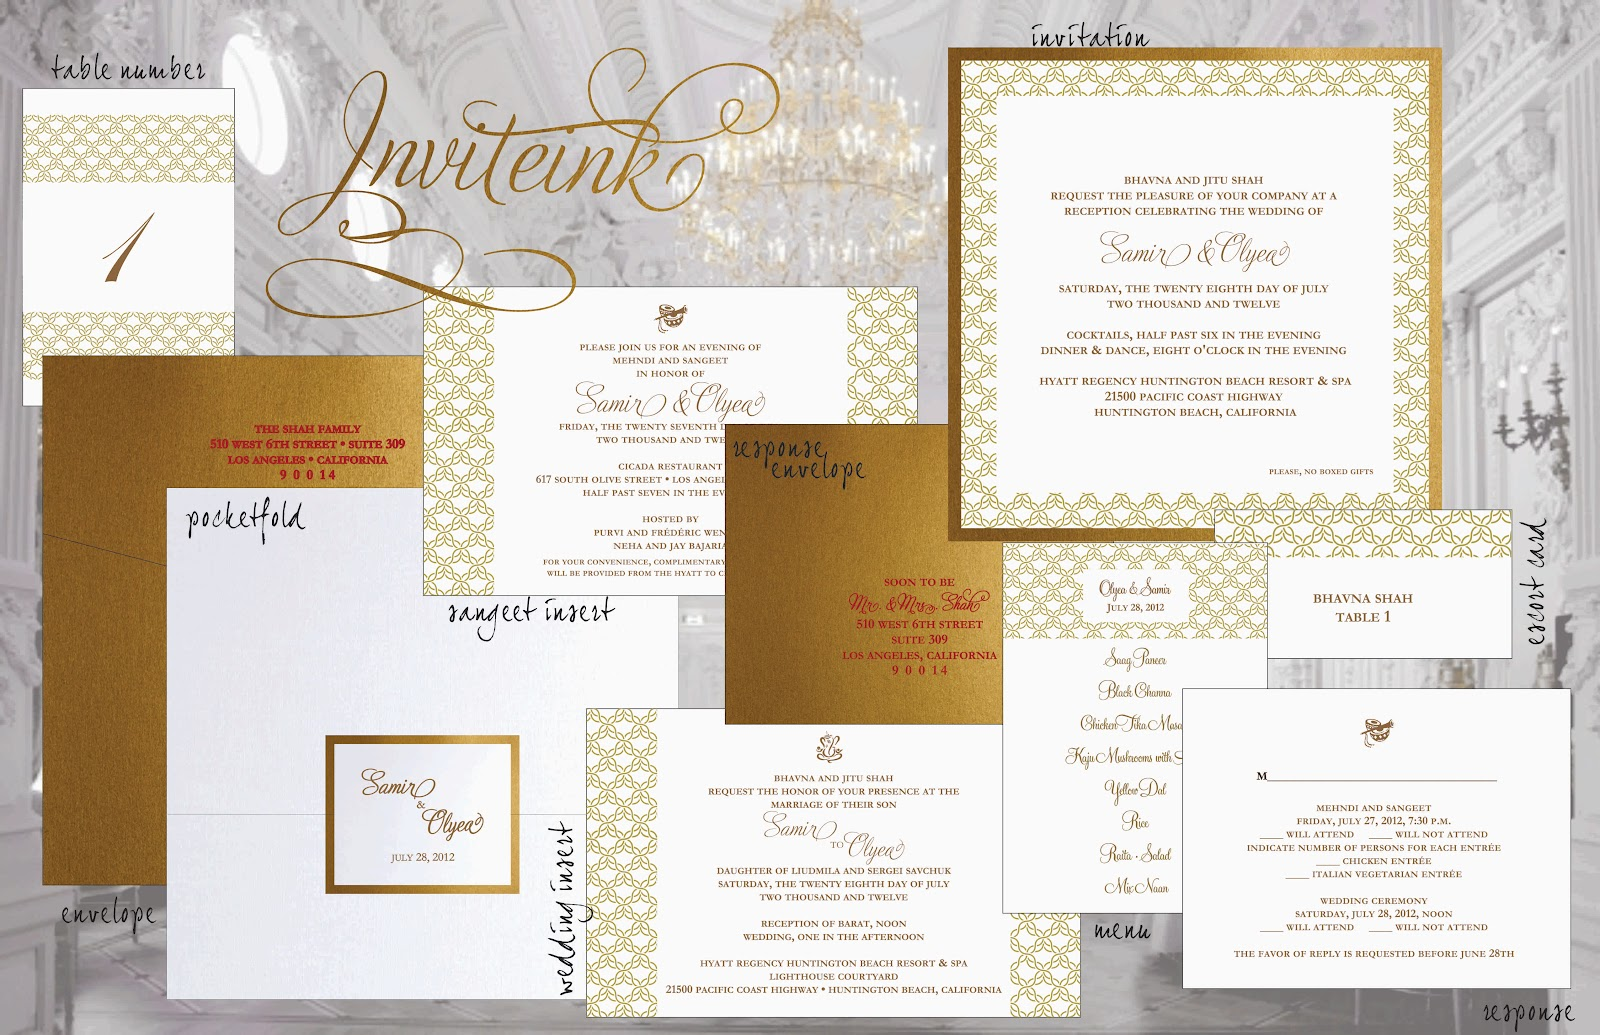 Embossed Card For Wedding Invitations: Inviteink: Embossed Indian Wedding Invitation